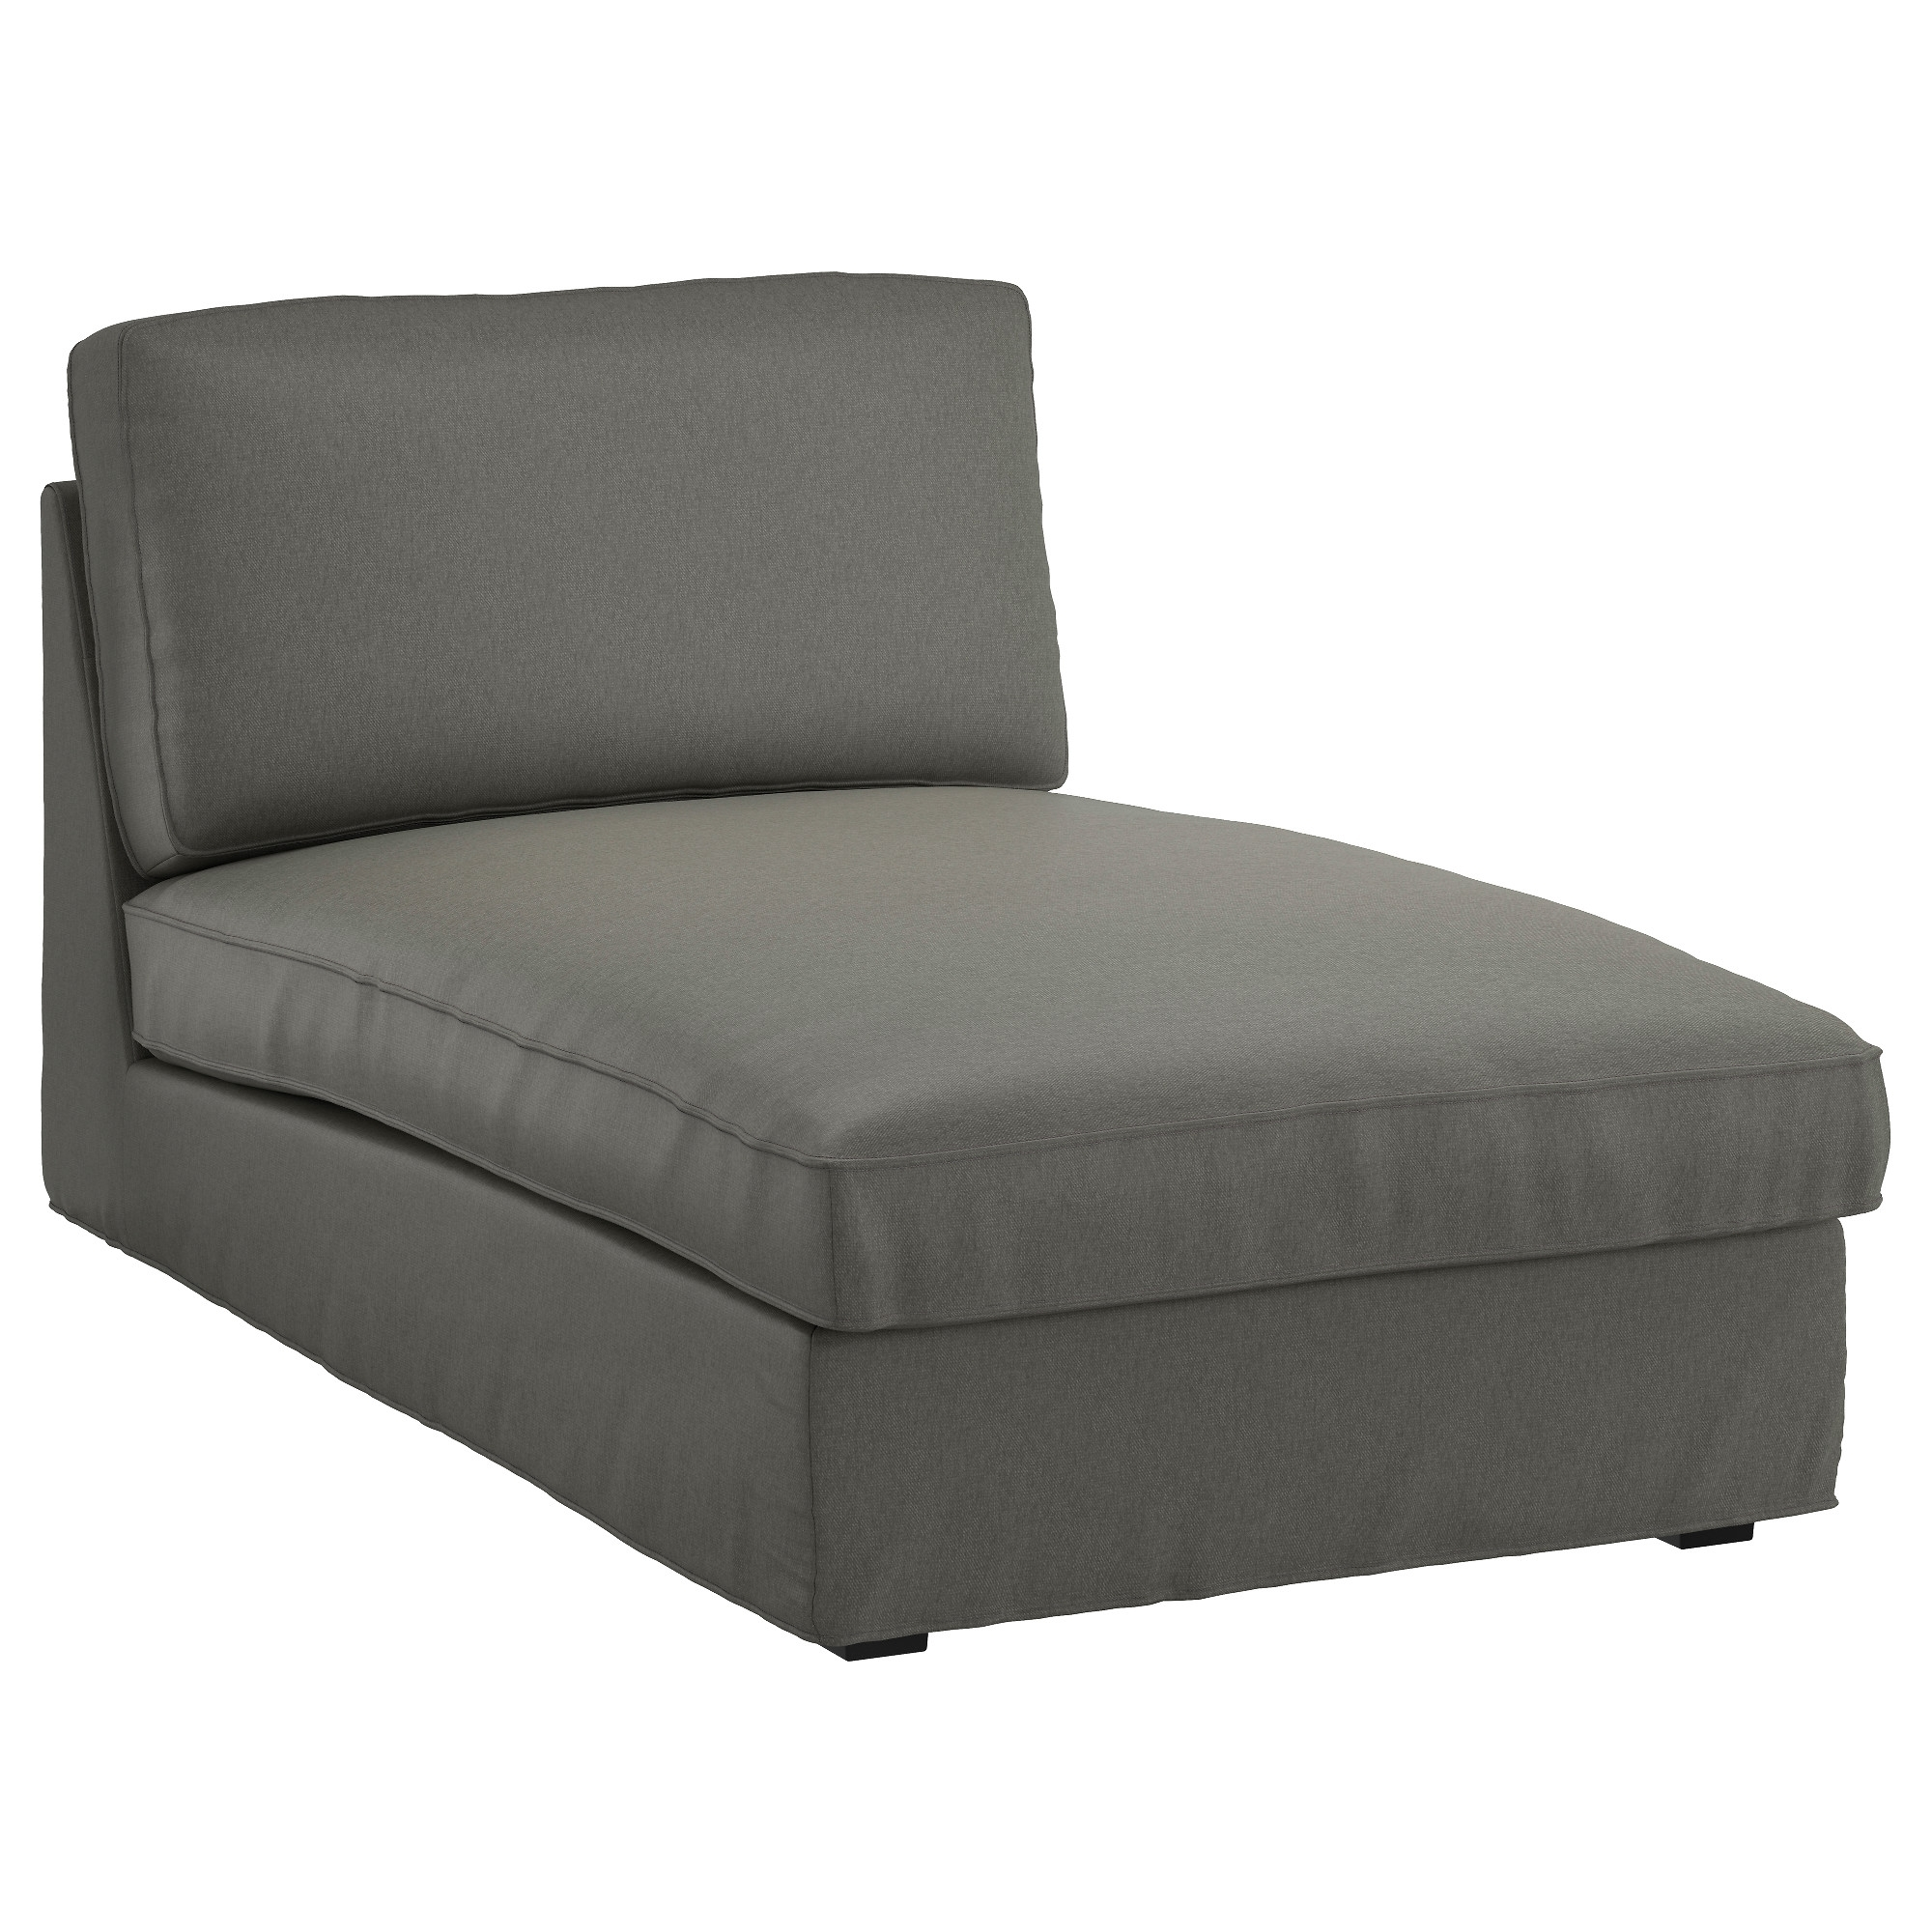 Favorite Kivik Chaise Longue Borred Grey Green – Ikea Intended For Ikea Chaise Sofas (View 3 of 15)